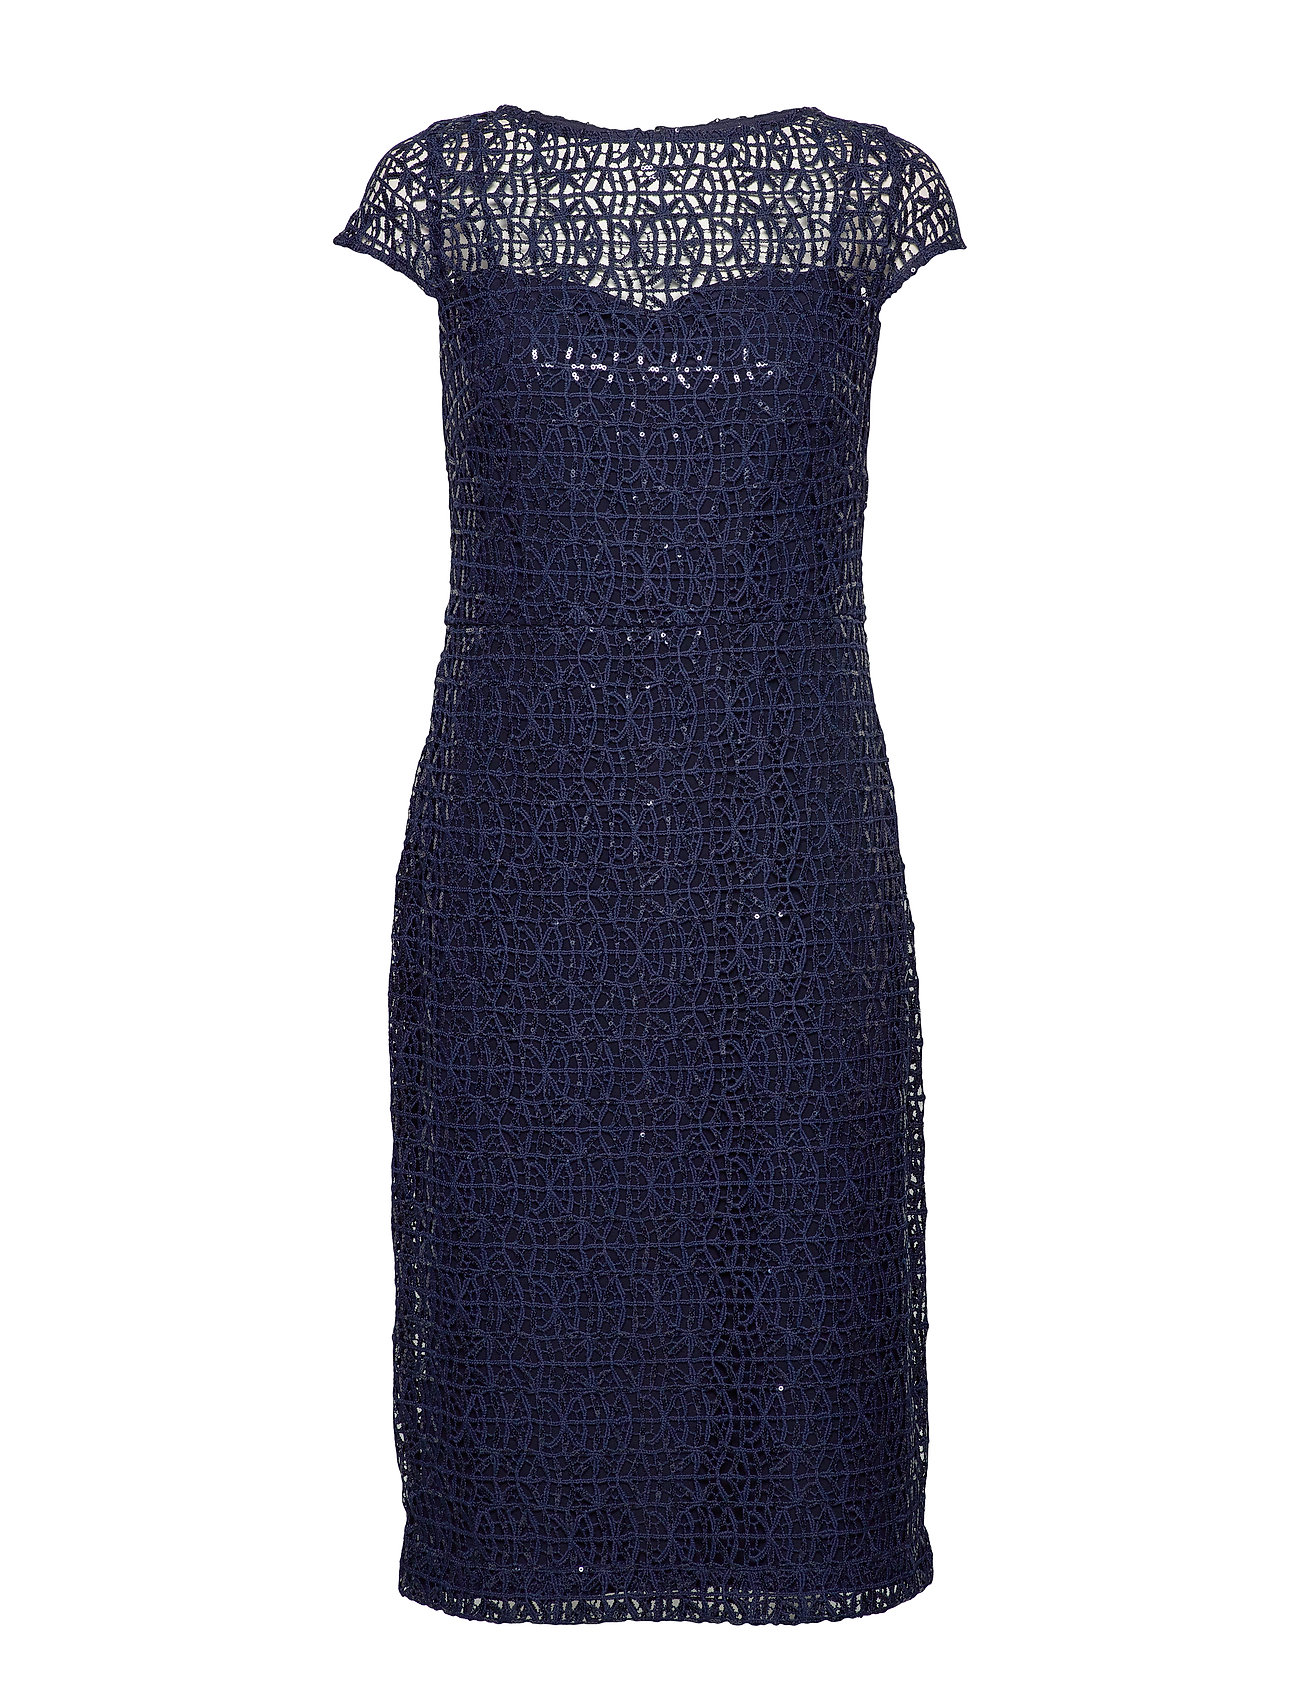 Lauren Ralph Lauren MRRSN SQN CHEM LACE-COCKTAIL DRESS - LIGHTHOUSE NAVY